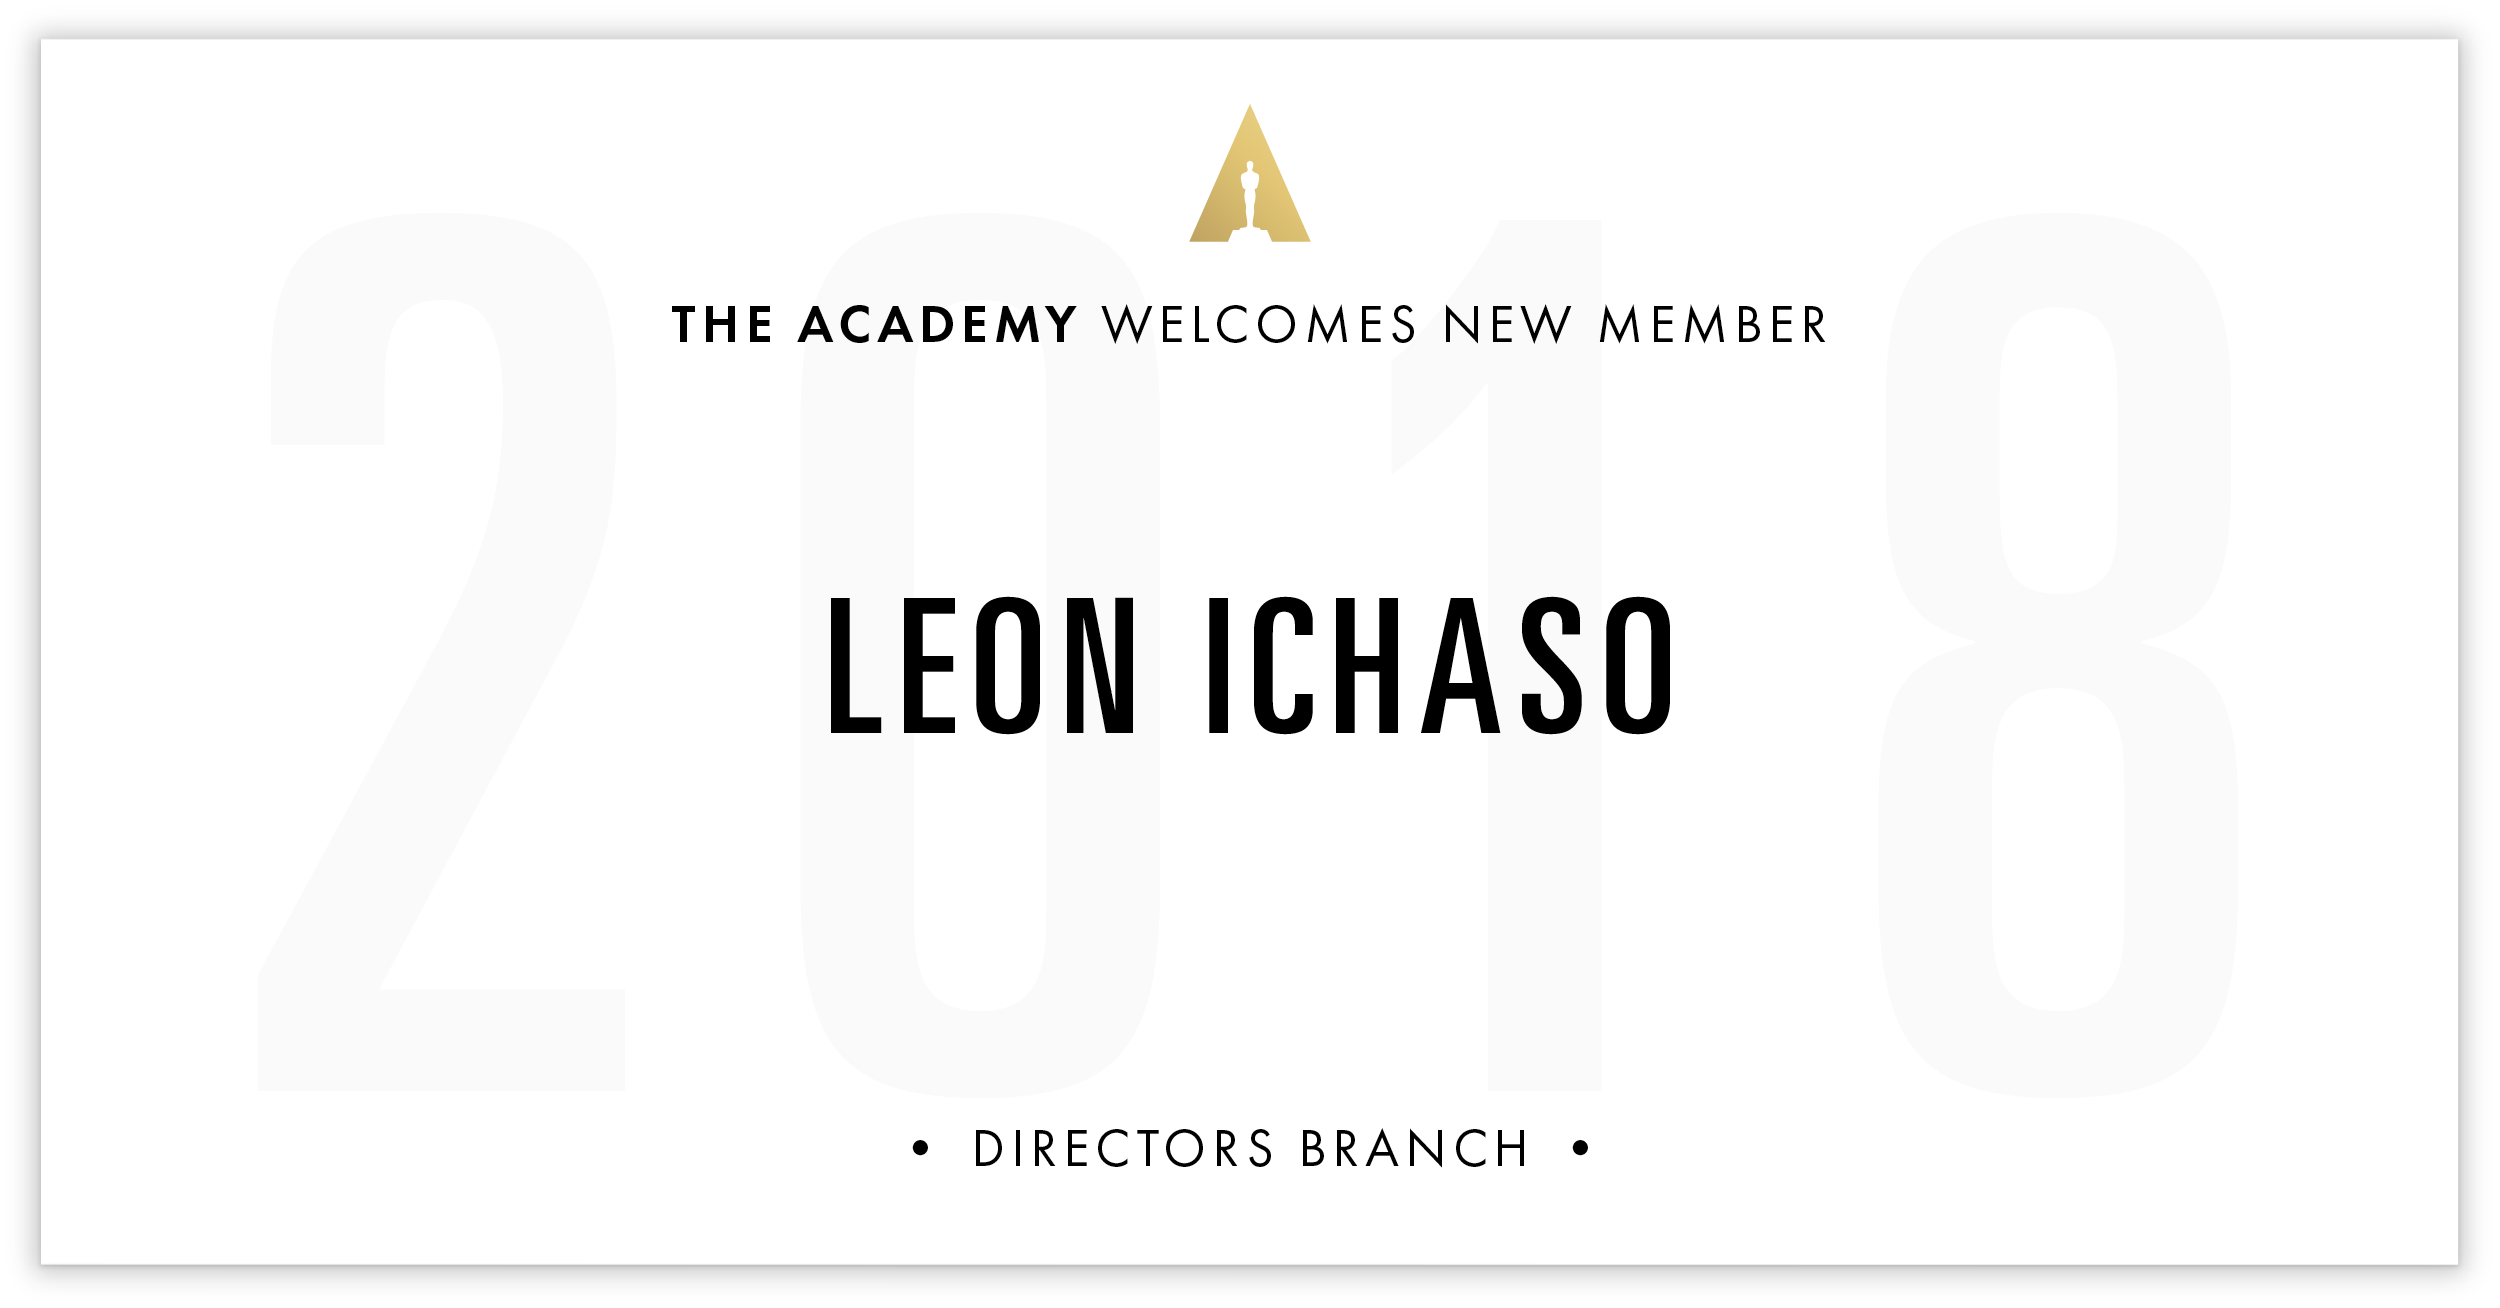 Leon Ichaso is invited!